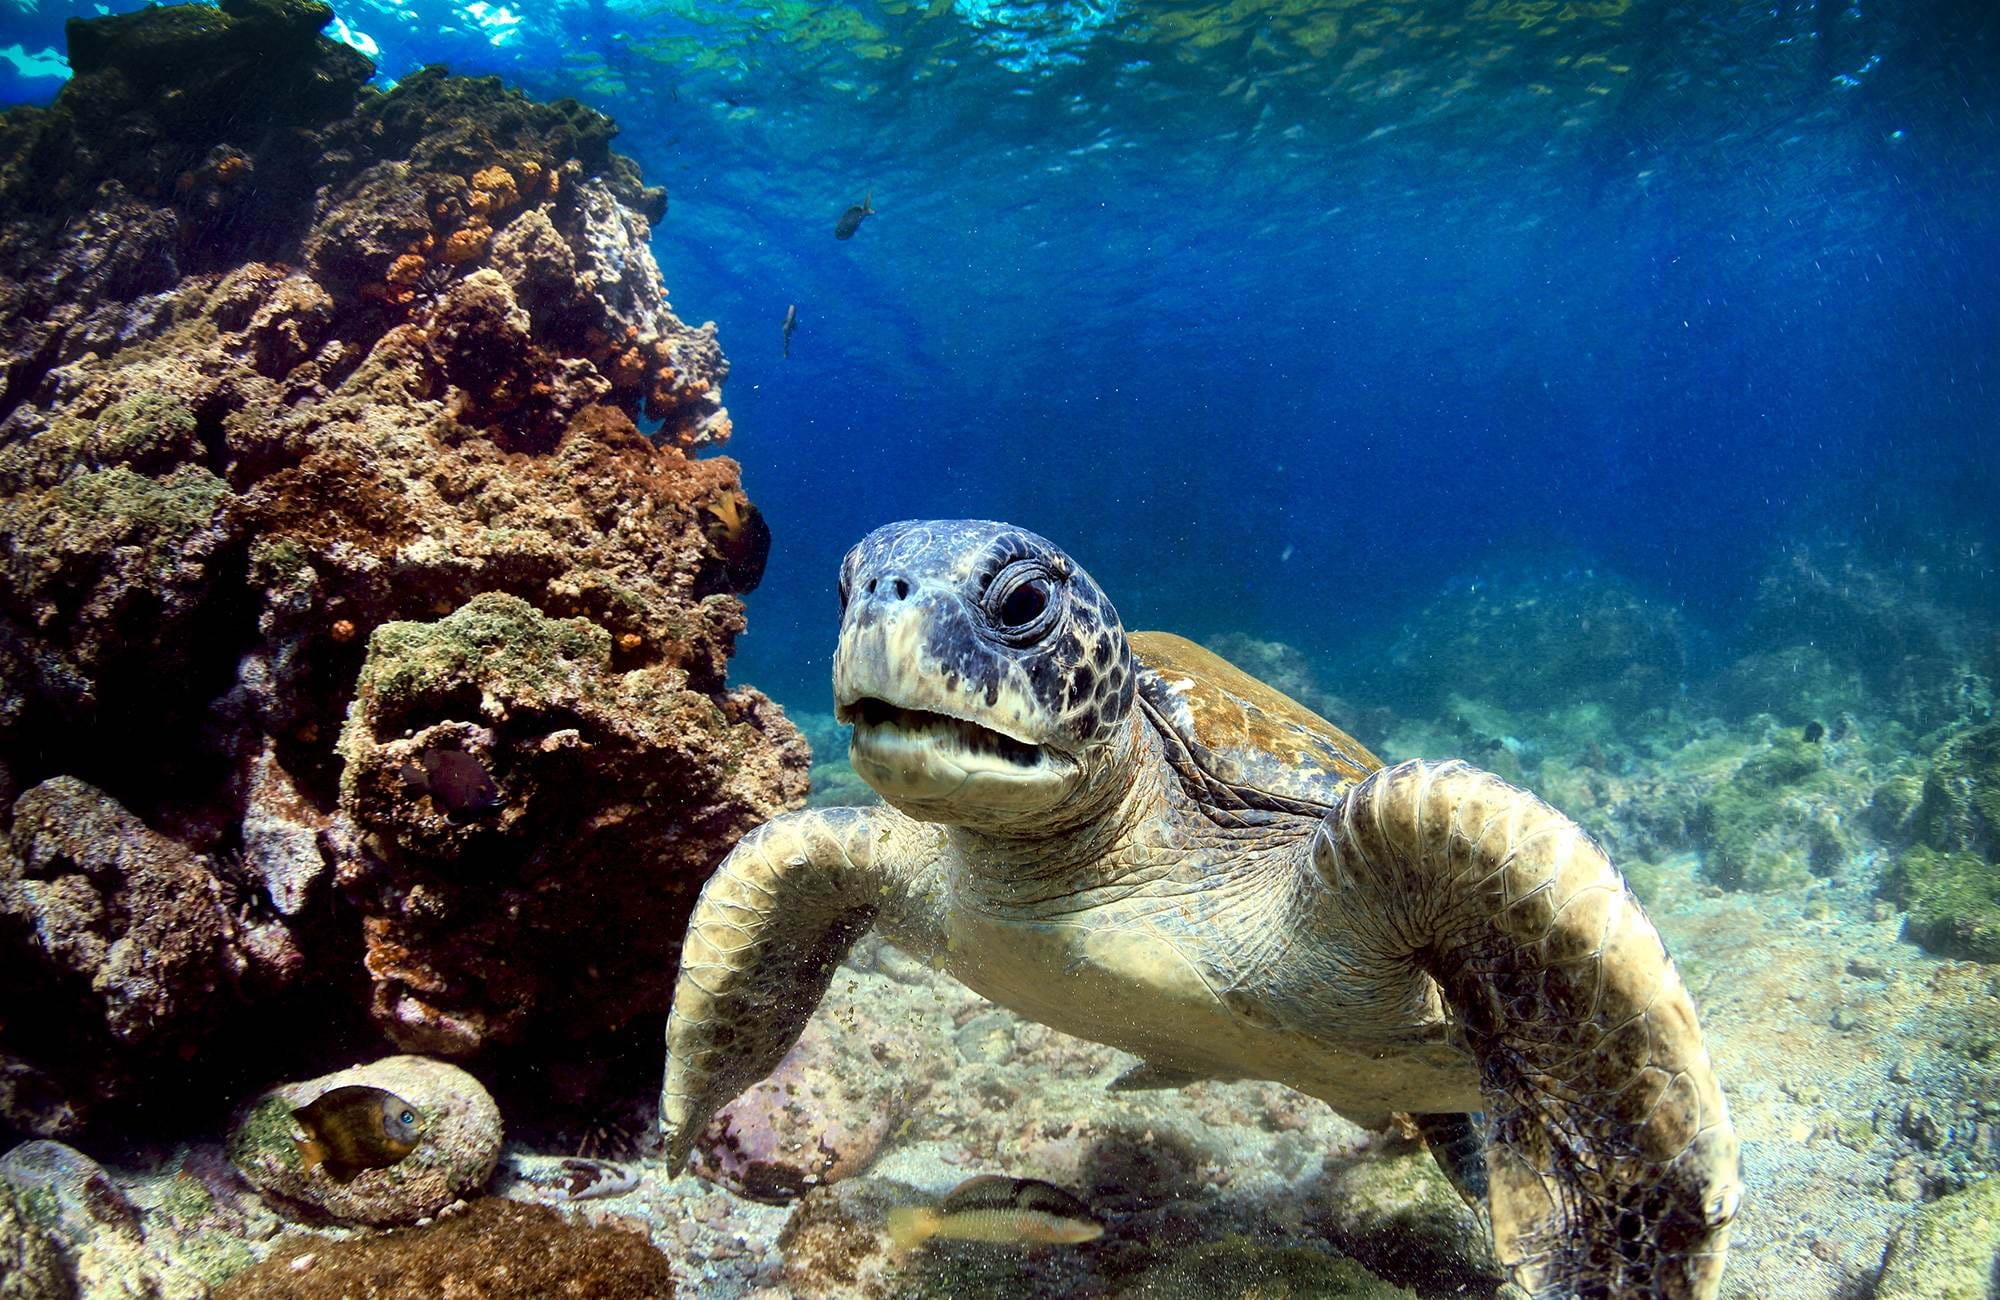 galapagos-islands-ecuador-sea-turtle-volcanic-rocks-underwater